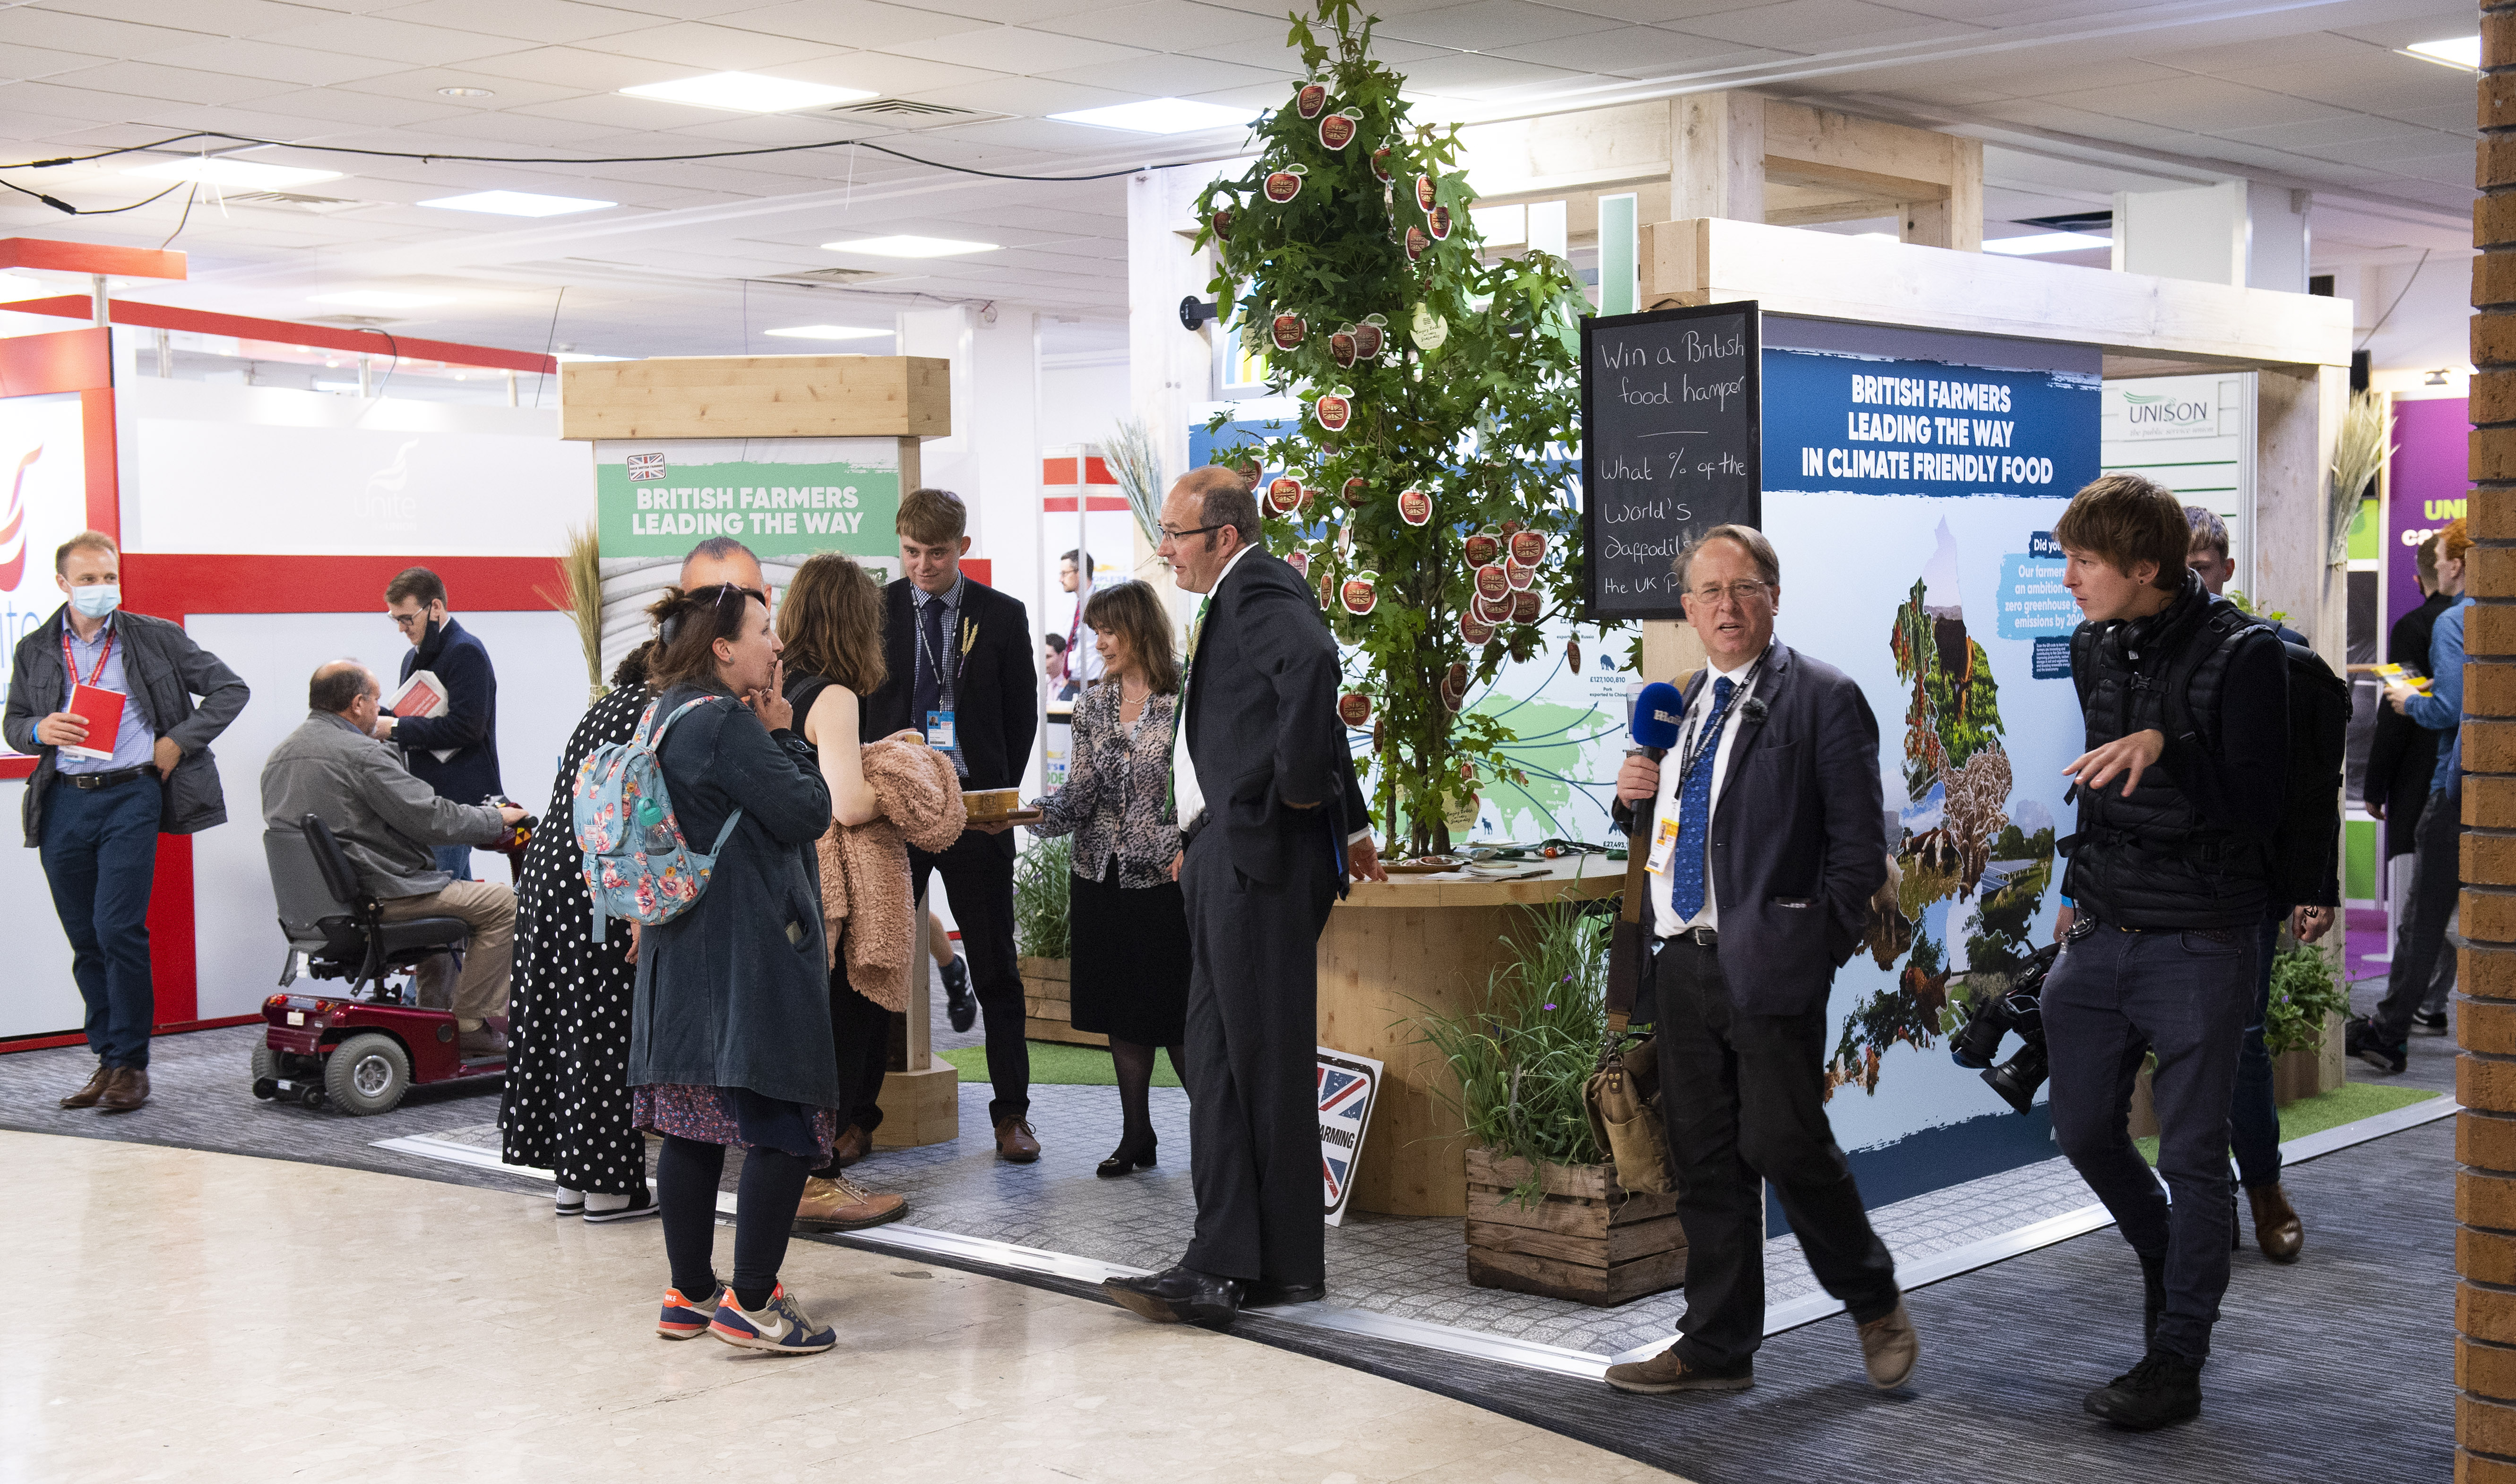 The NFU wins Best Exhibition Stand award at the 2021 Labour Party Conference